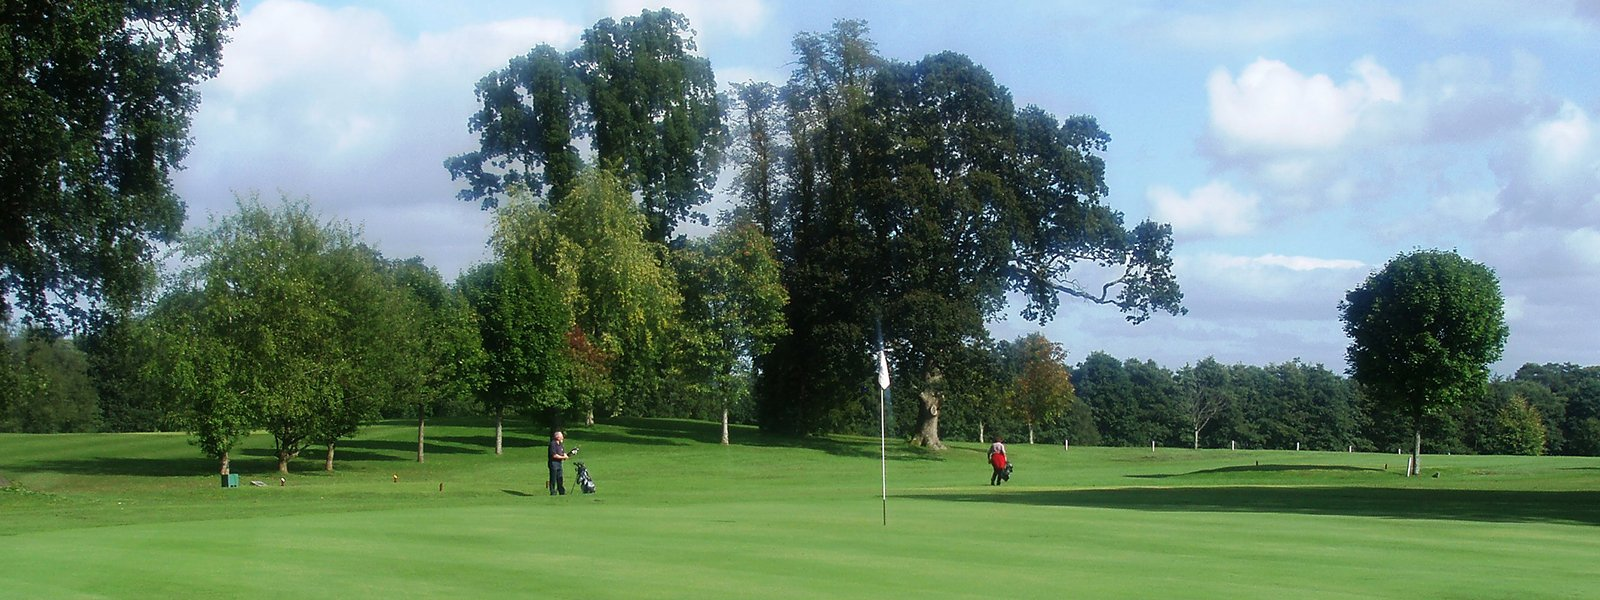 Golf course at Ross Priory